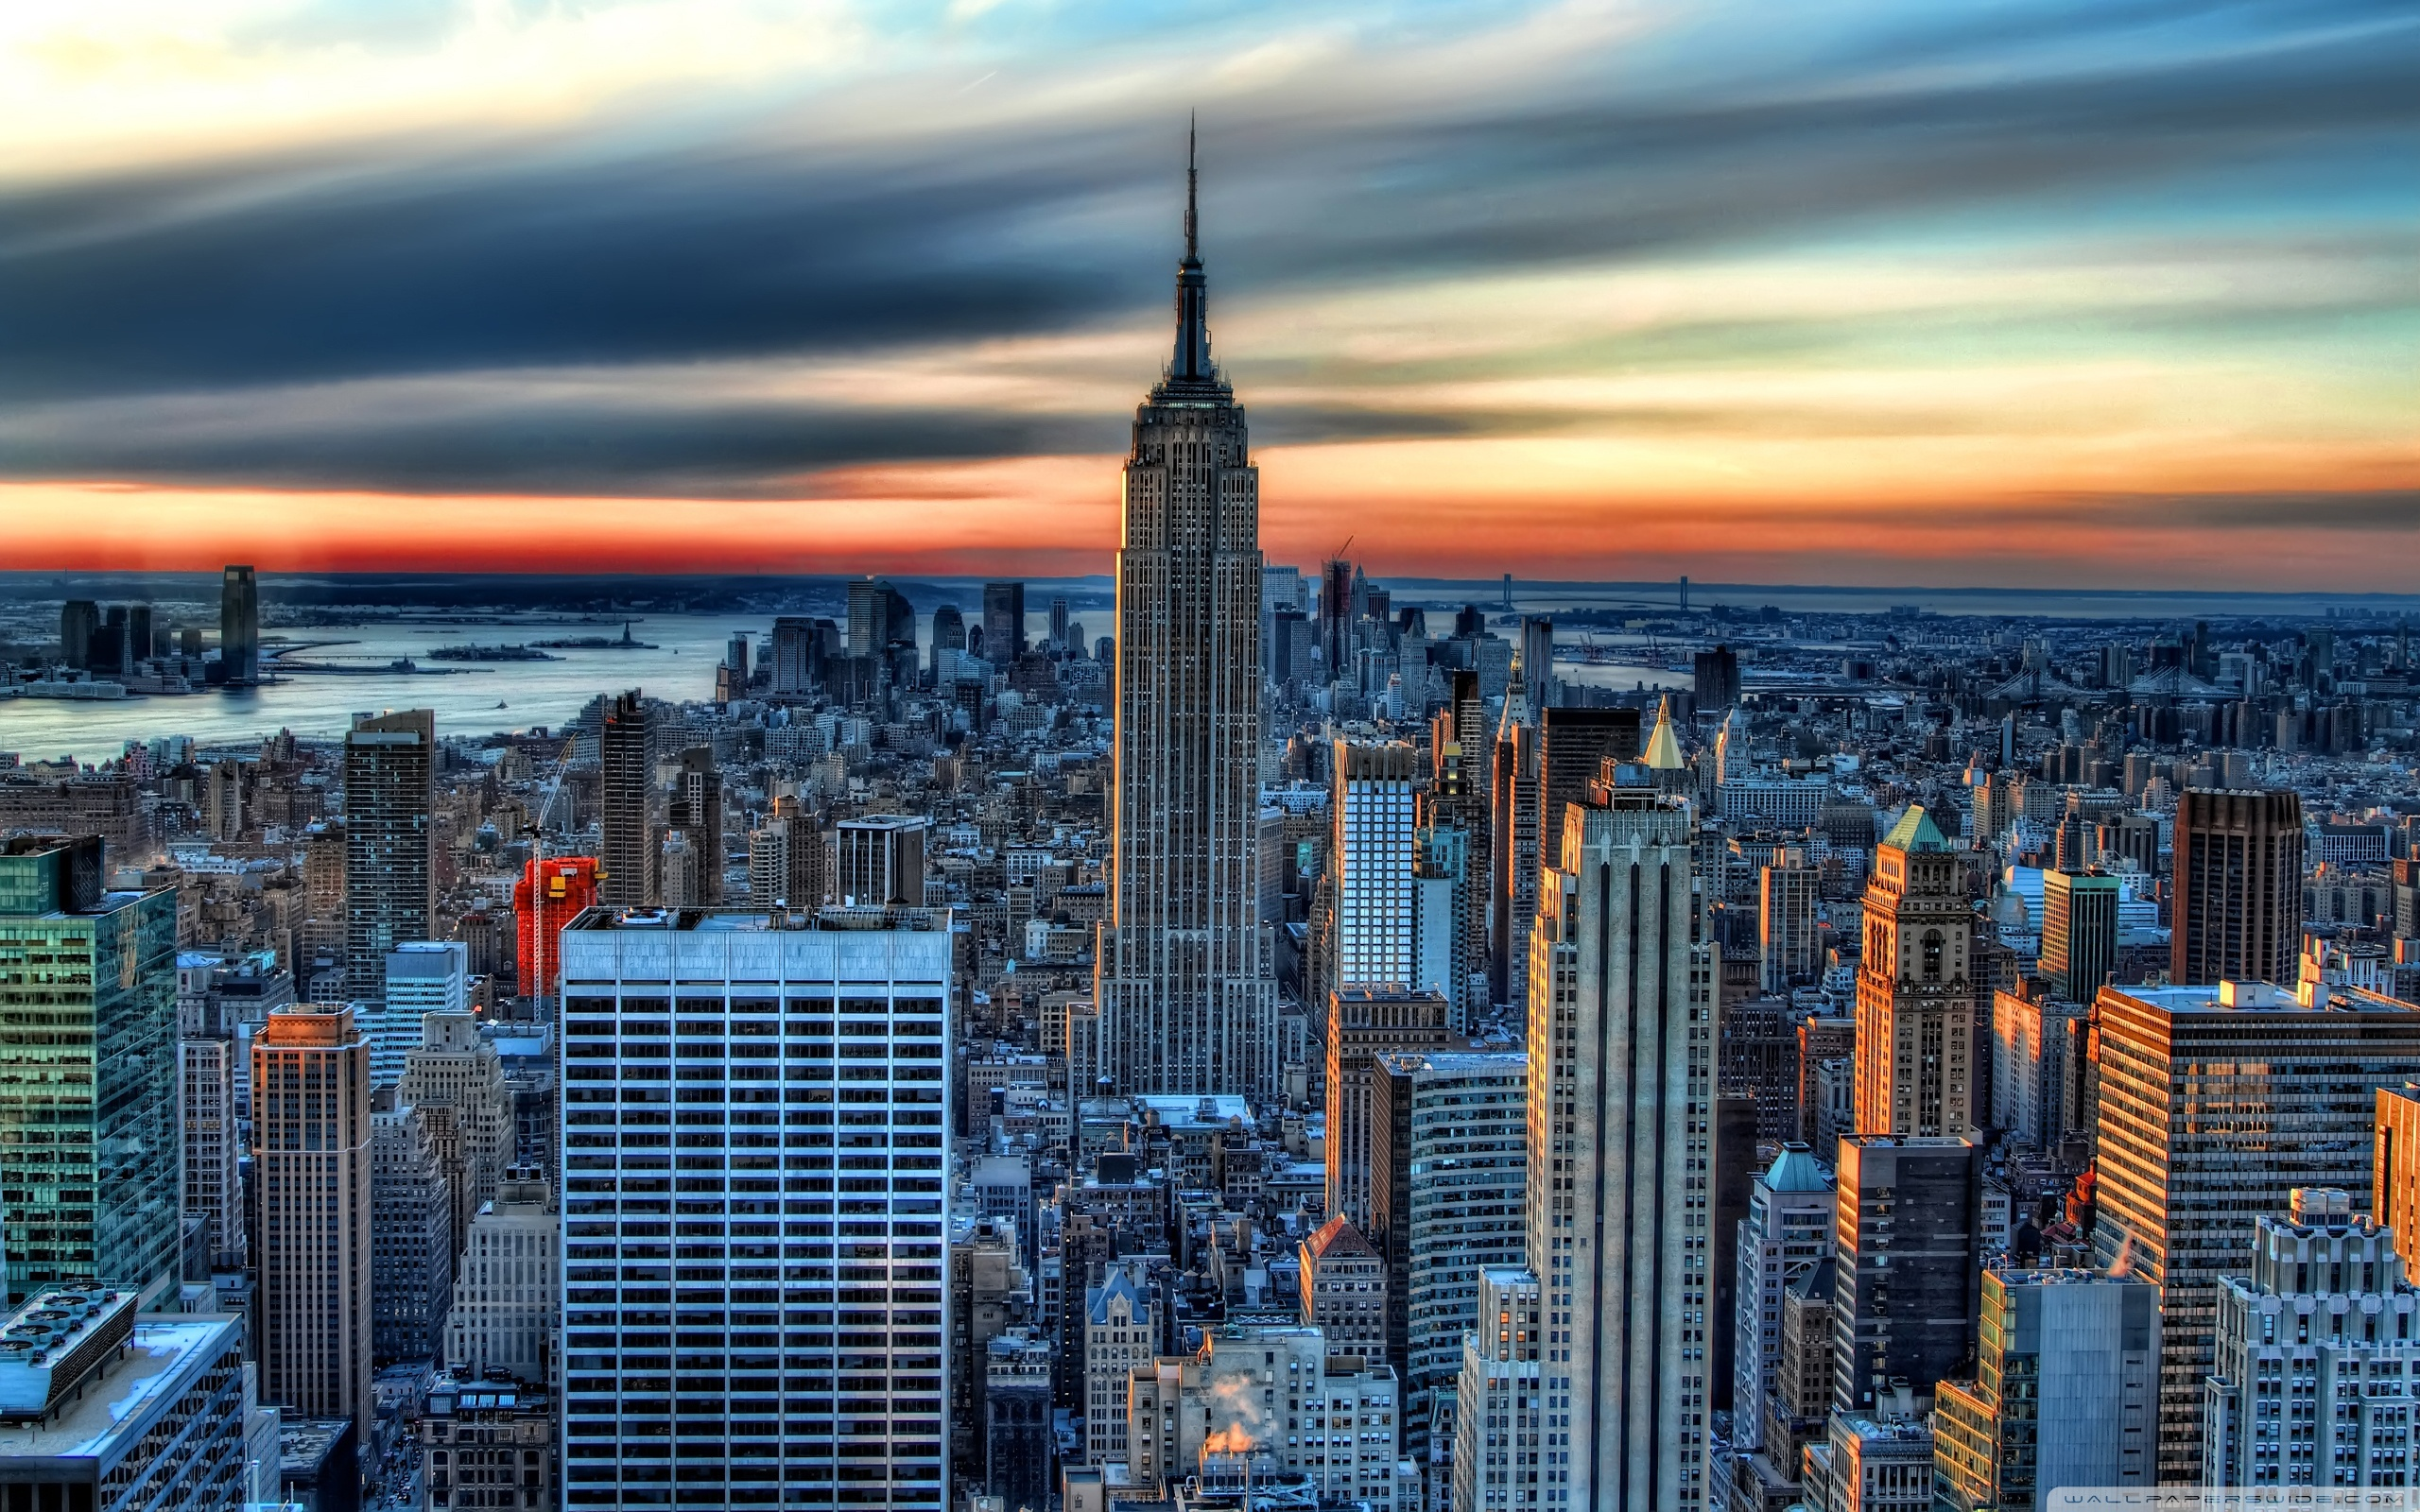 Wallpaper Of New York City Posted By John Thompson